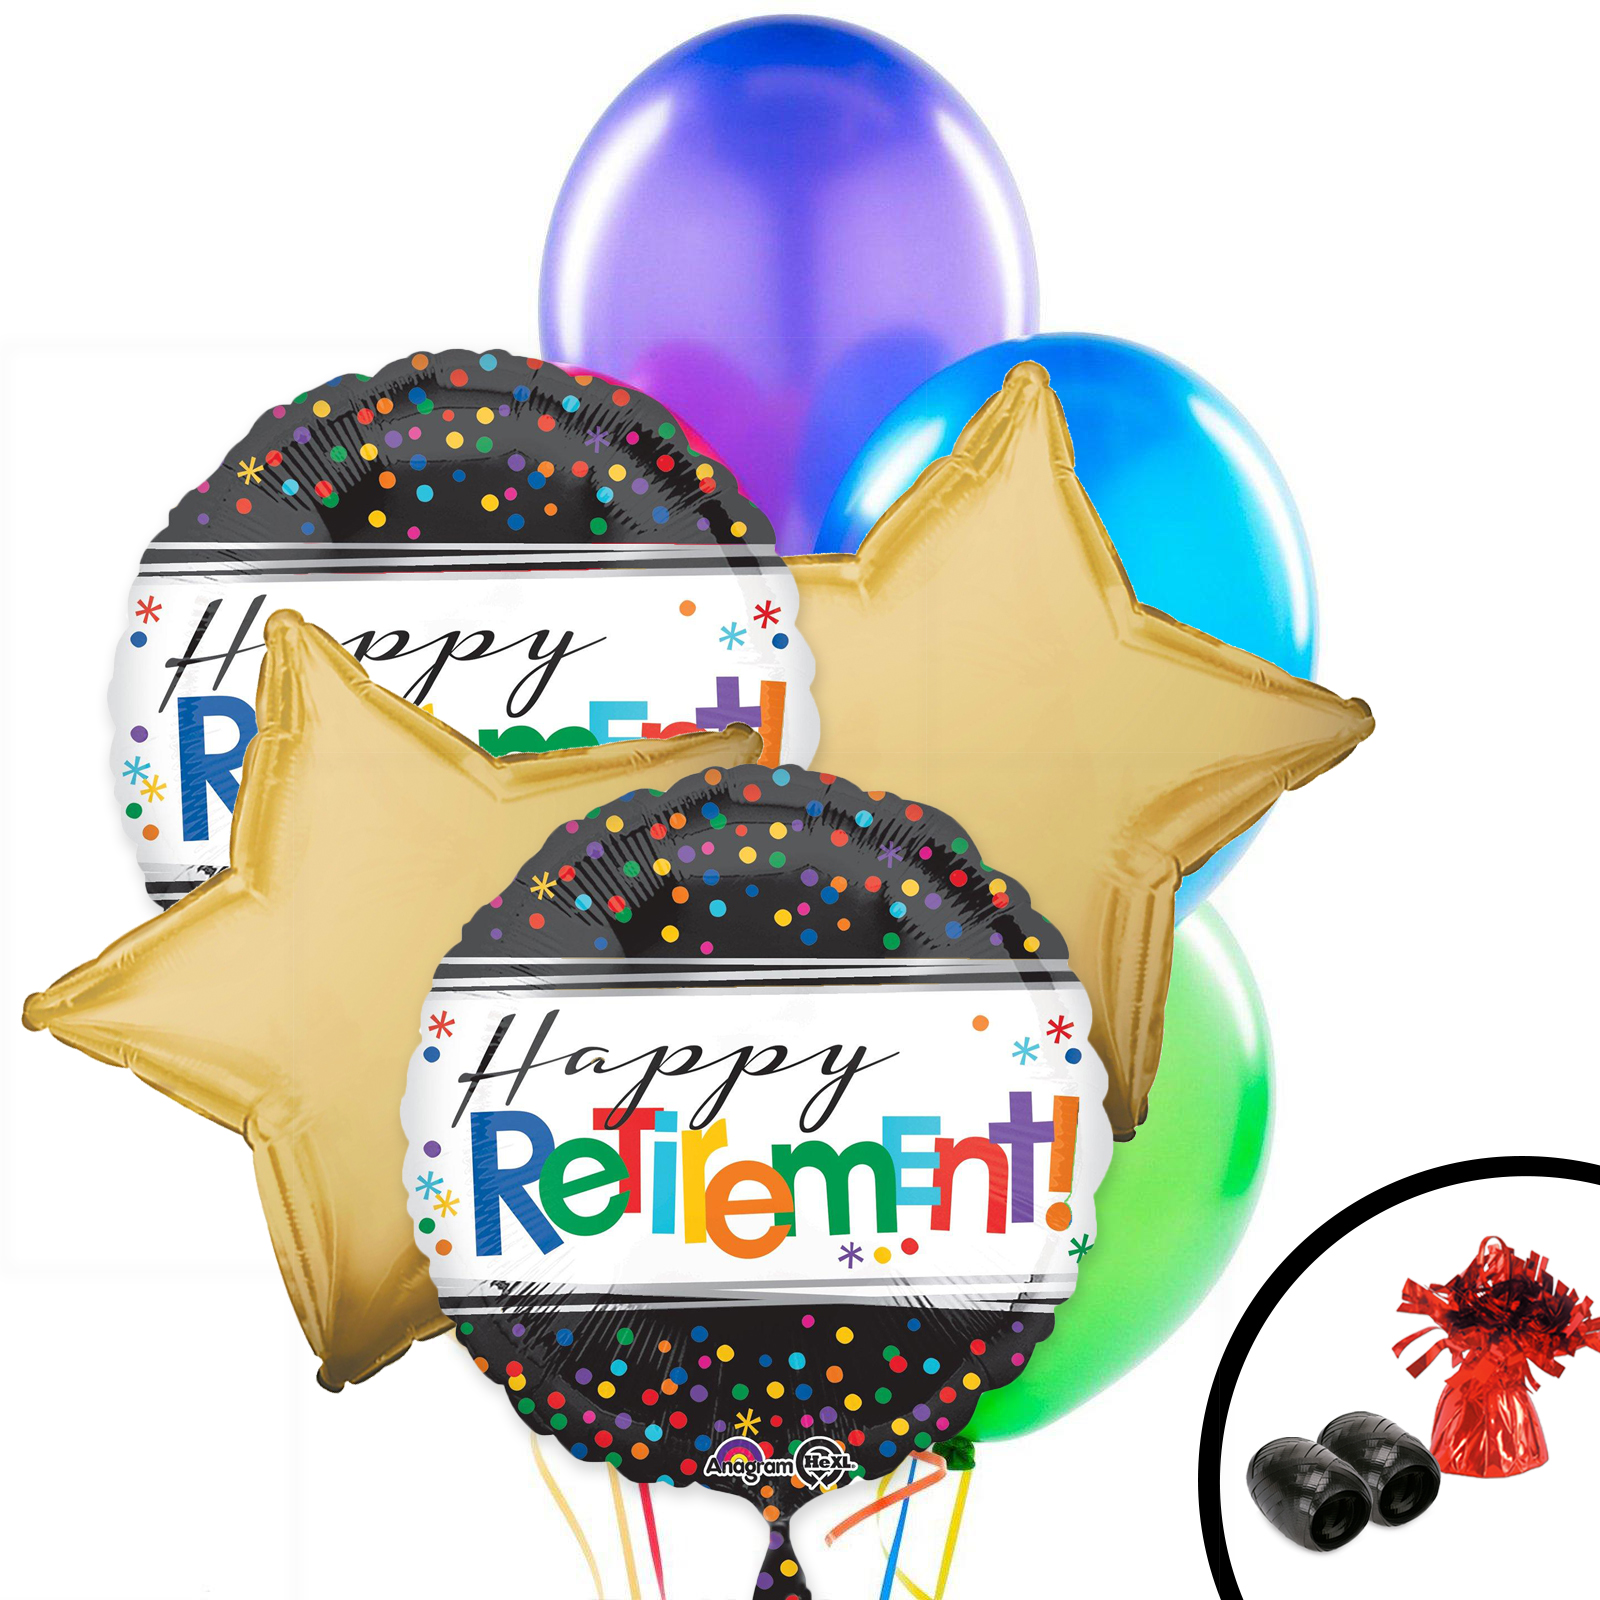 Retirement balloon bouquet partybell